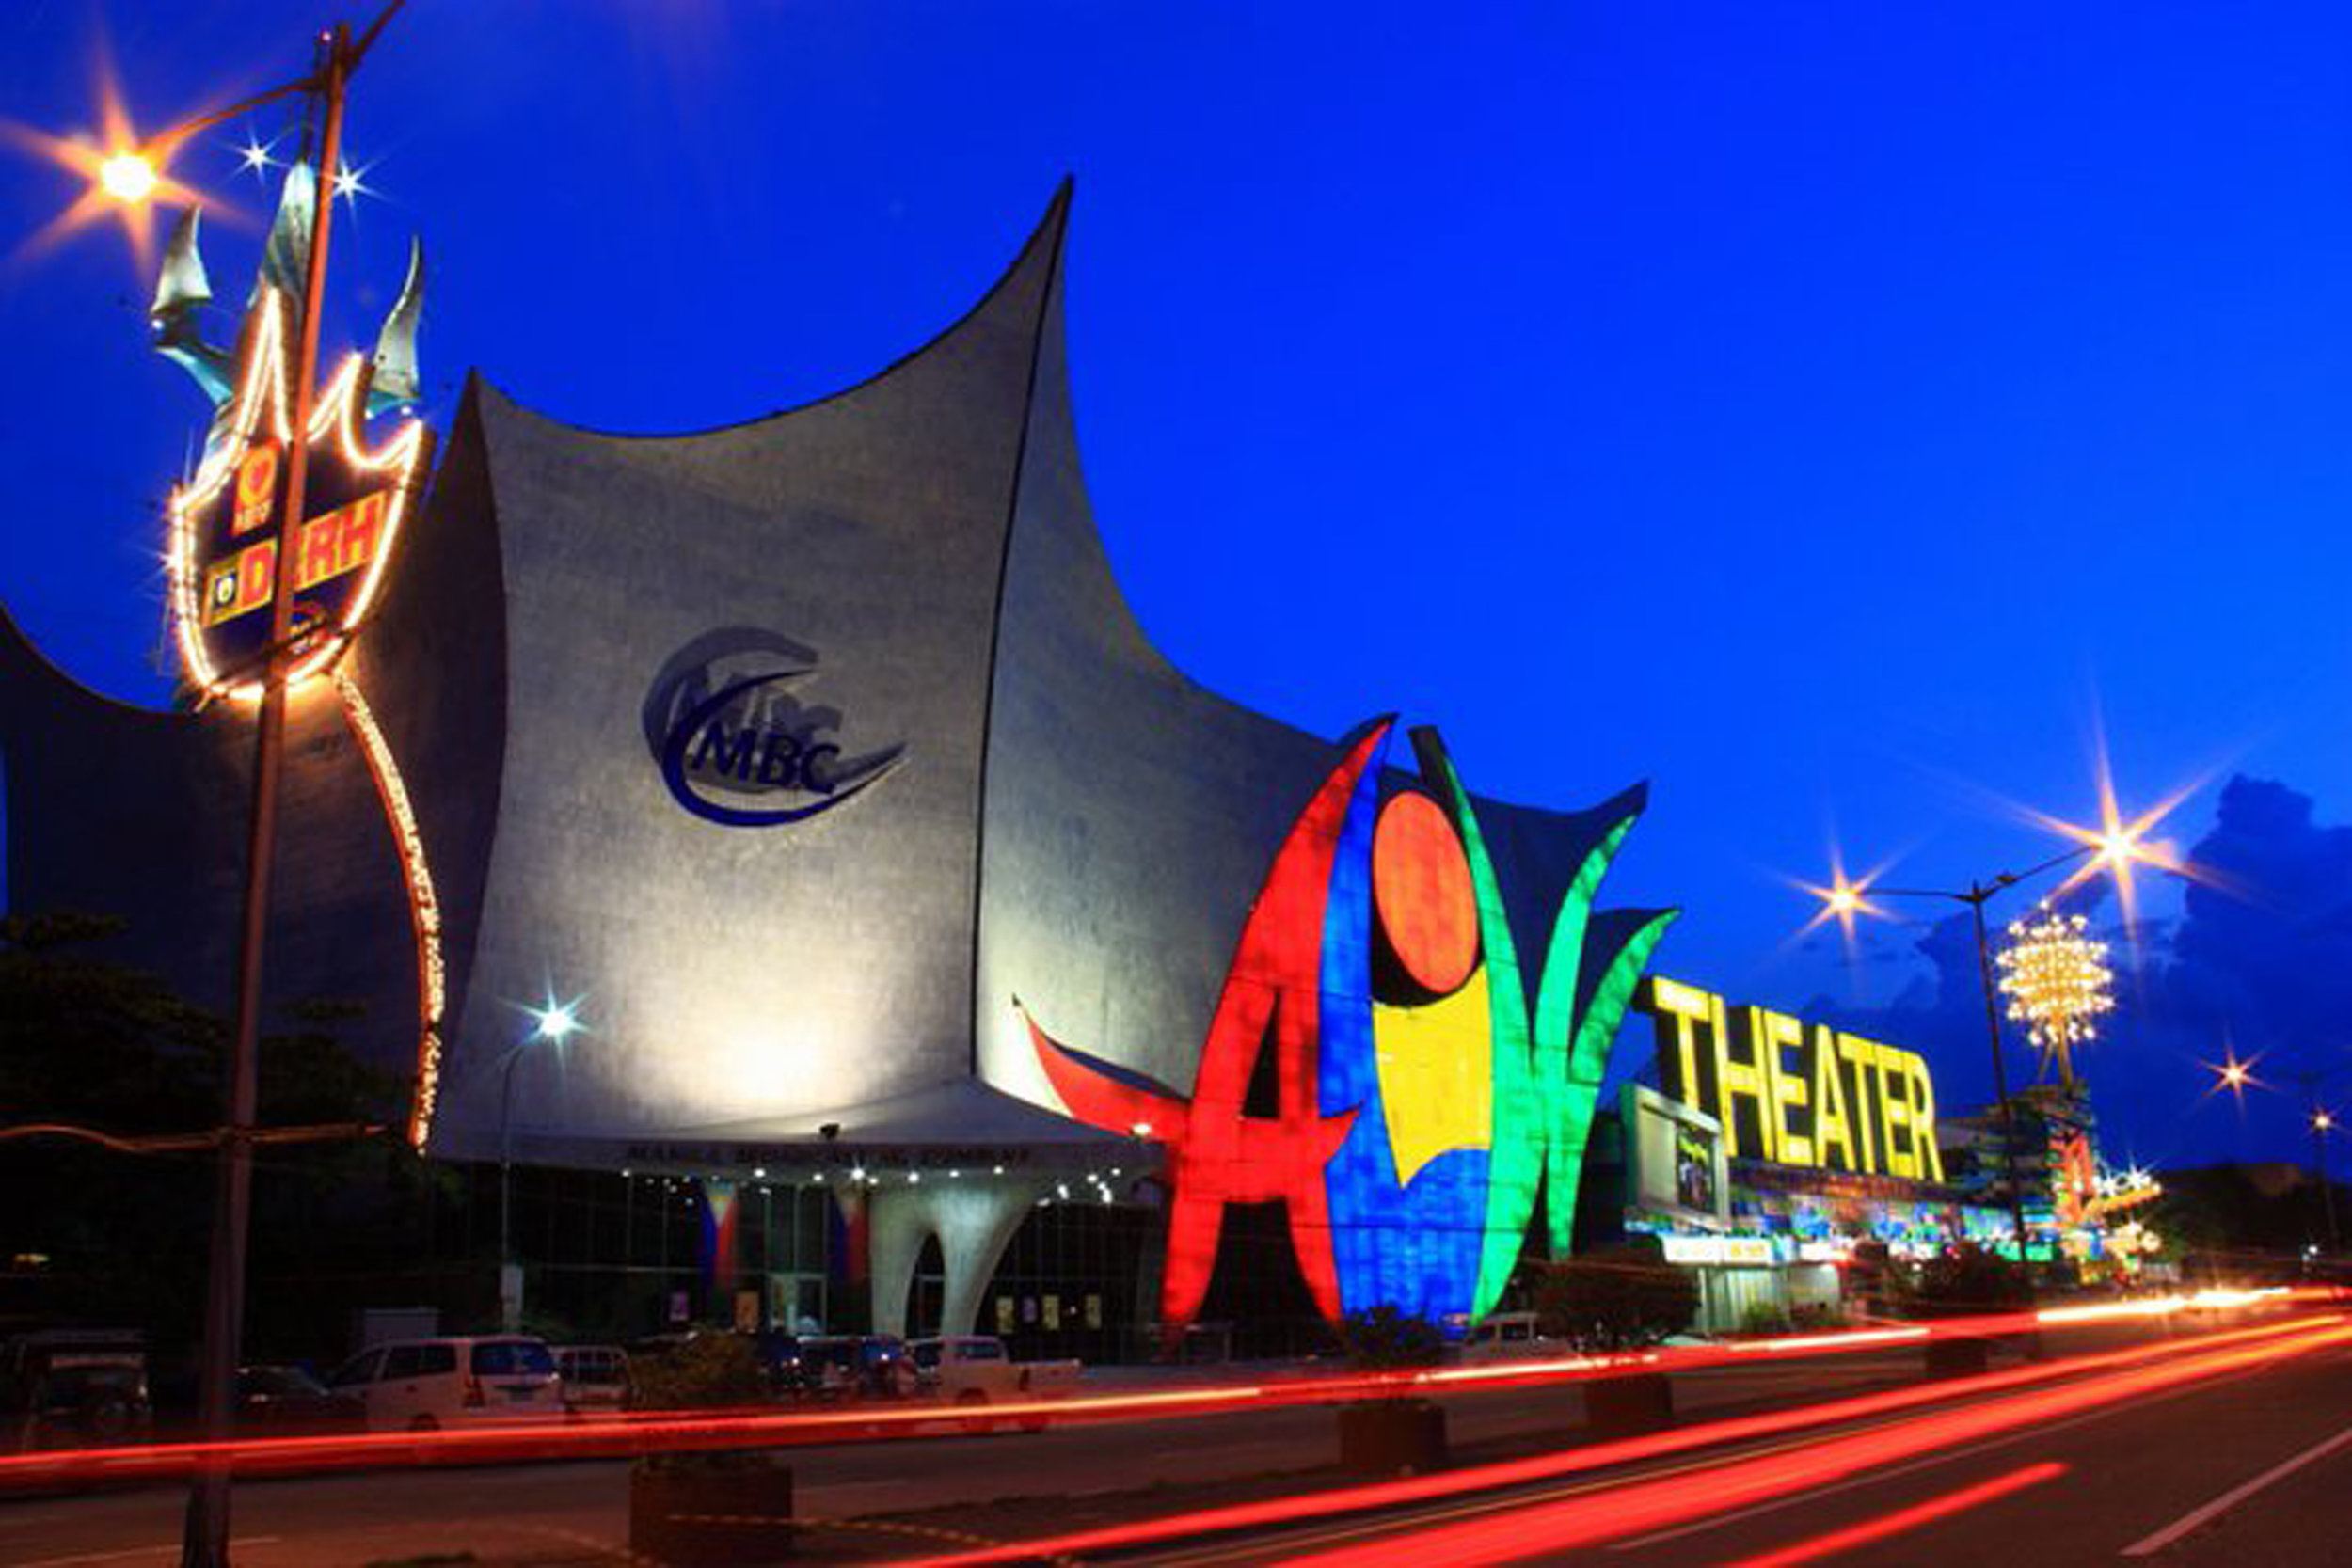 Another gift to Lisa, the 2,750-capacity Aliw Theater was launched in 2002 and has since become Ballet Manila's venue for its annual performance season.